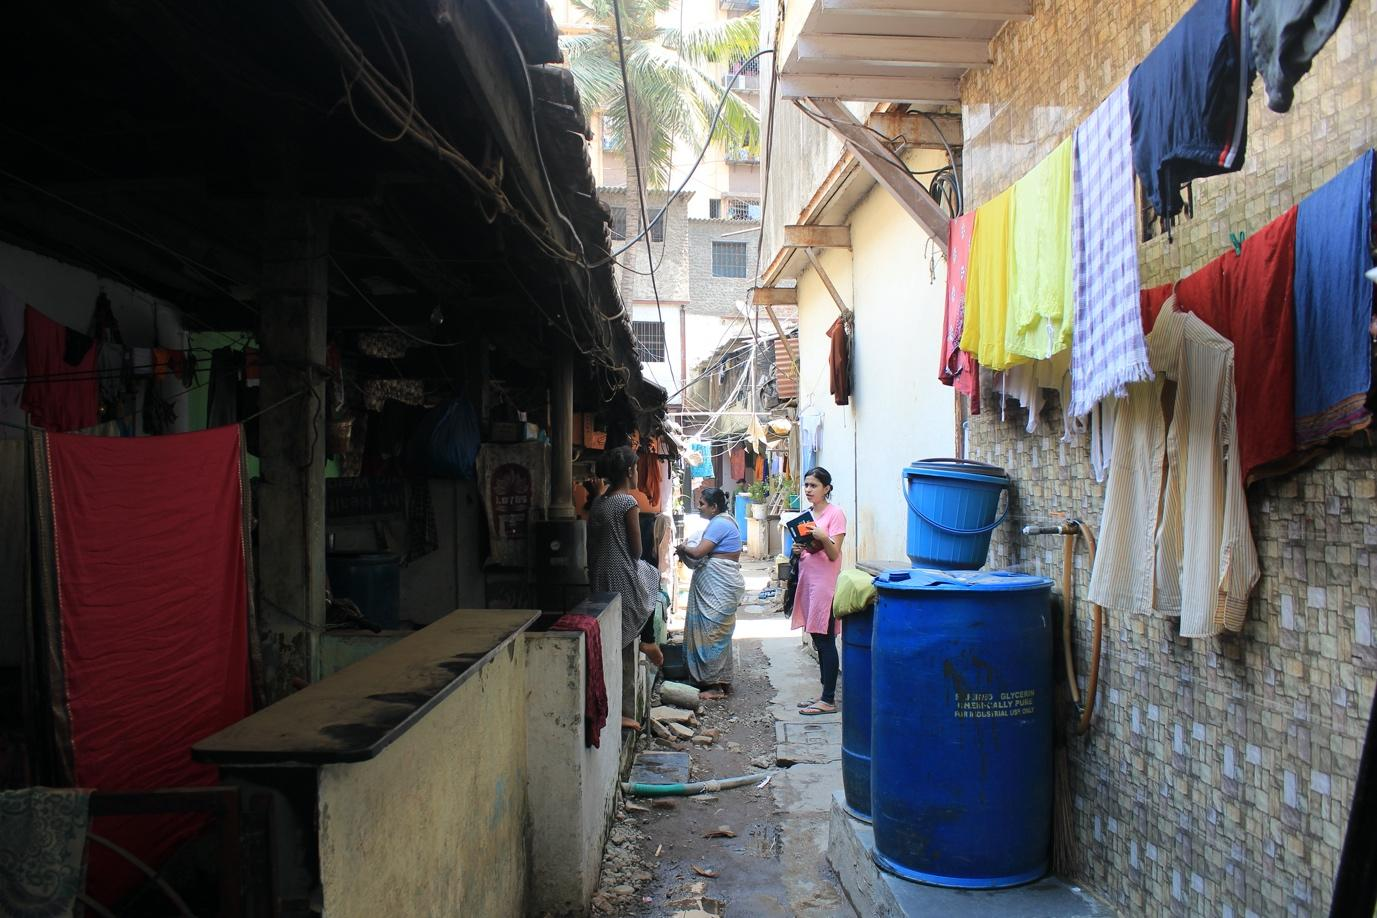 researcher in a bylane in Dharavi